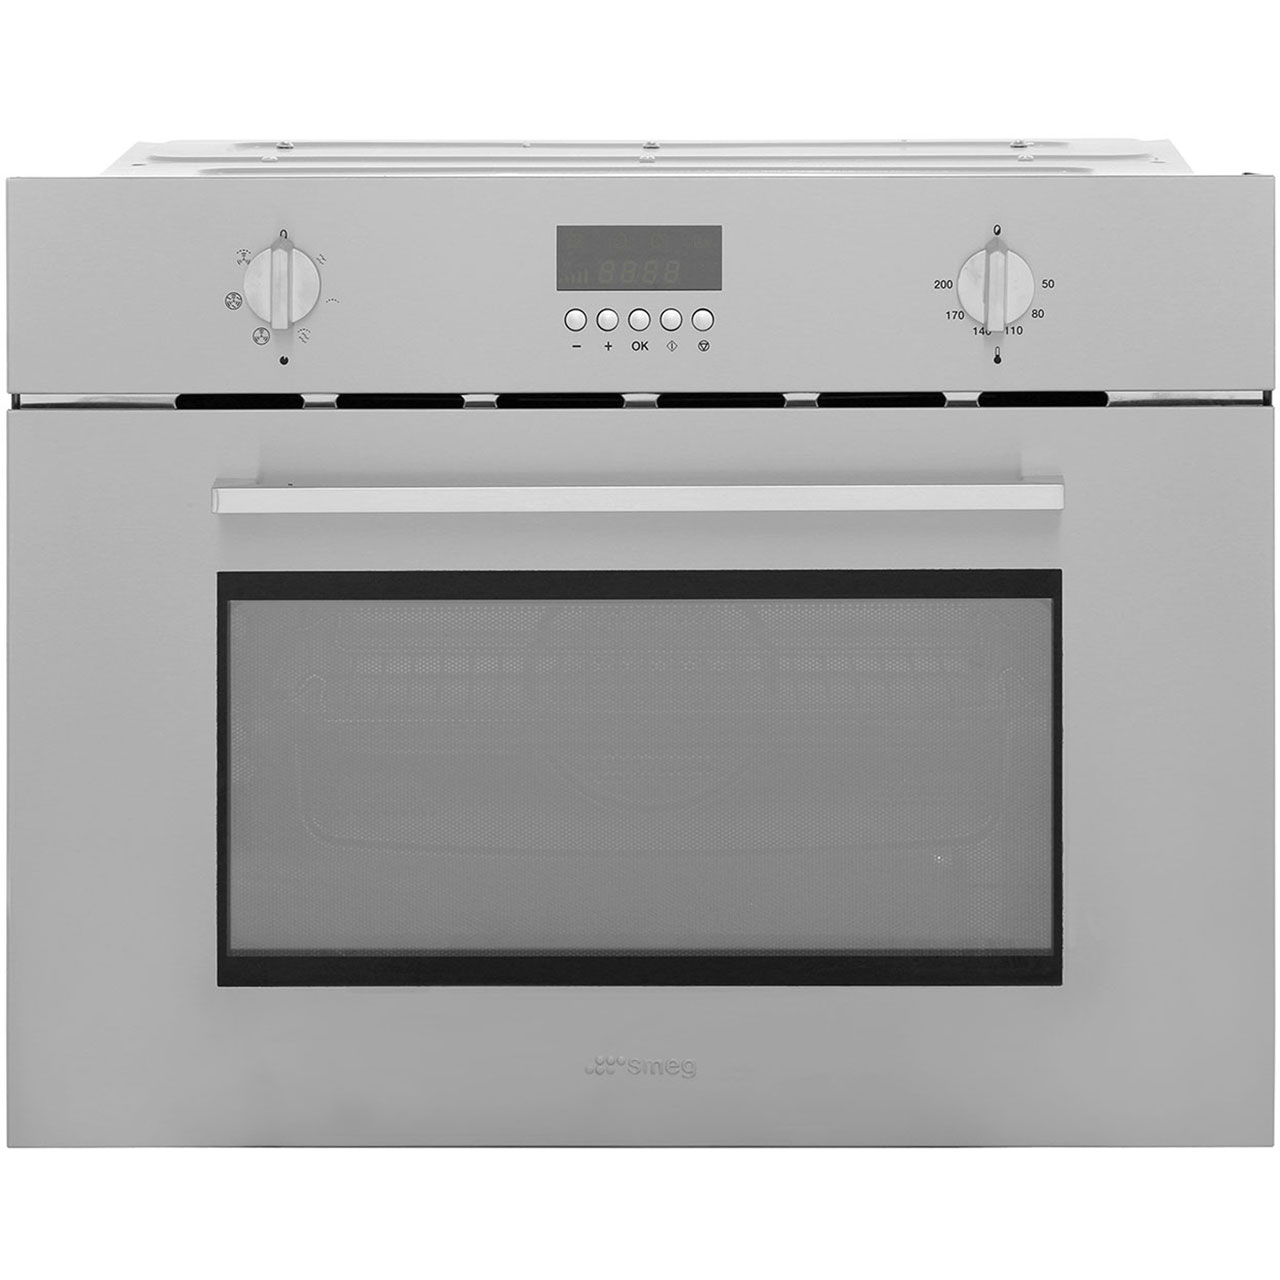 Integrated Microwave Buy Cheap Smeg Integrated Microwave Compare Cookers